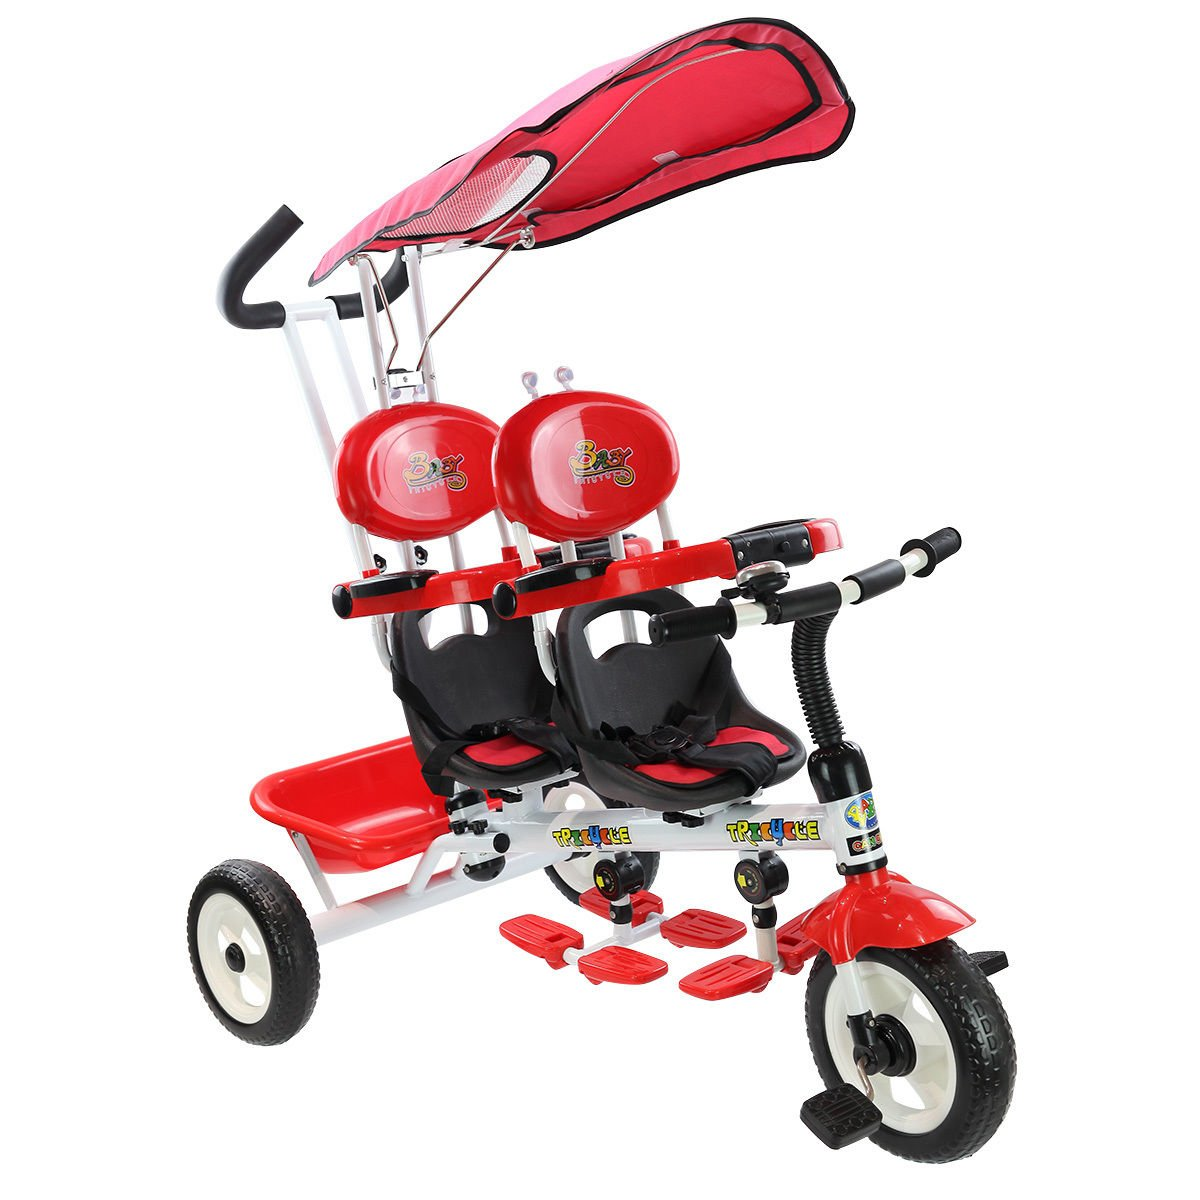 Costzon 4 in 1 Twins Kids Trike Baby Toddler Tricycle Safety Double Rotatable Seat w/Basket (Tandem Tricycle, Red)